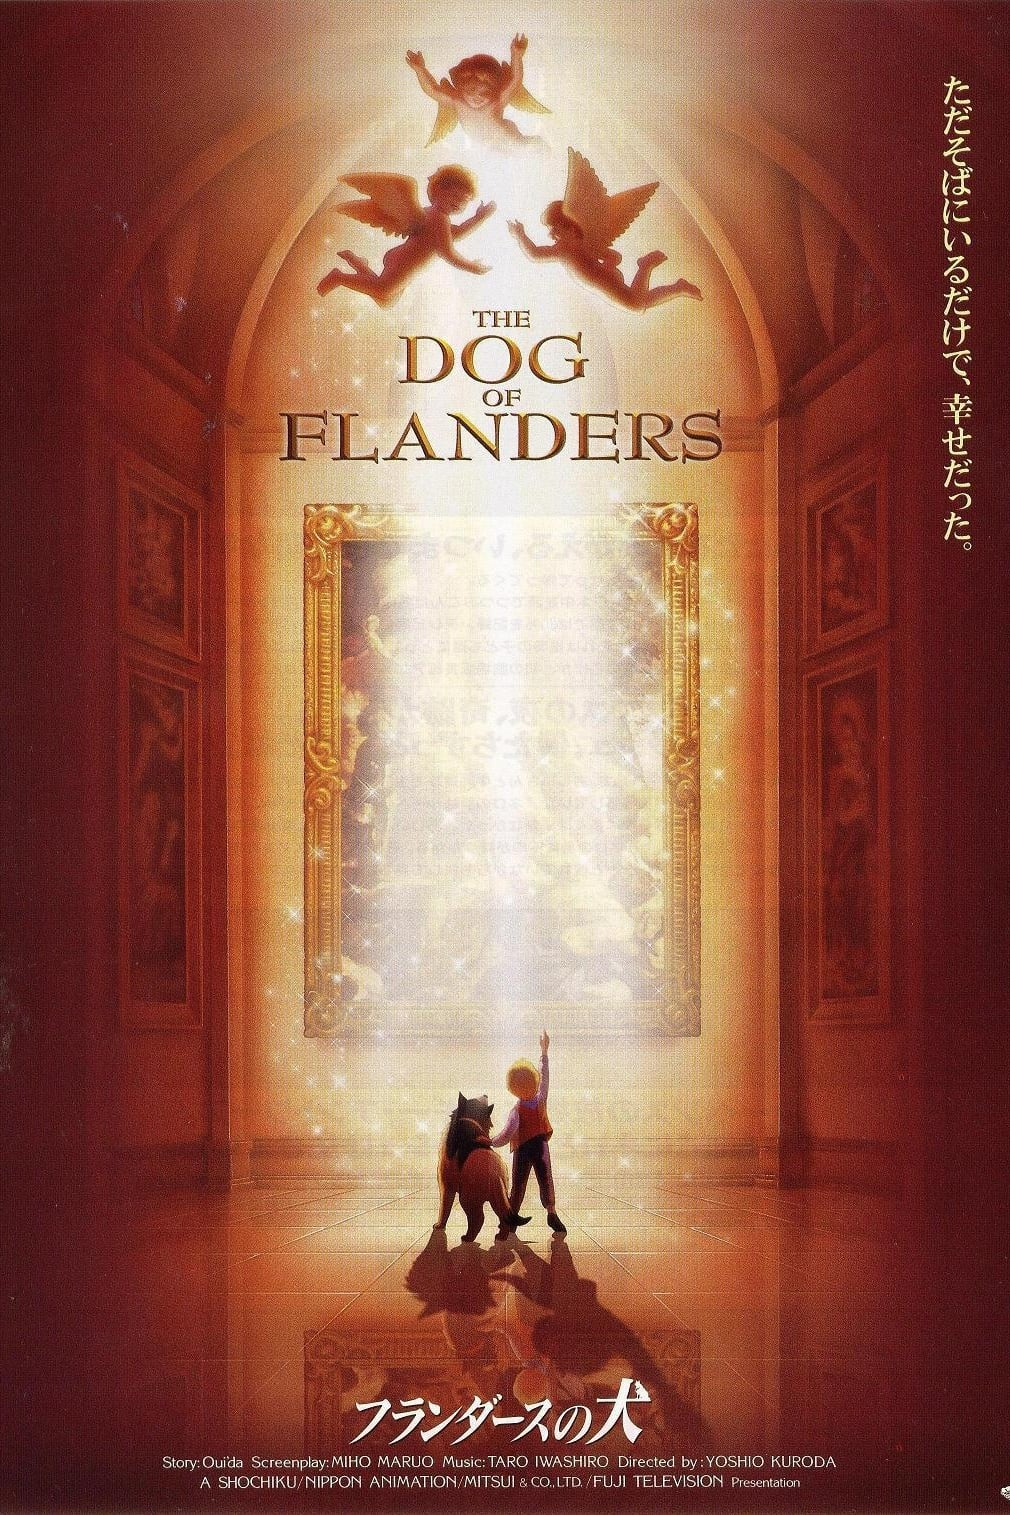 The Dog of Flanders (1975)